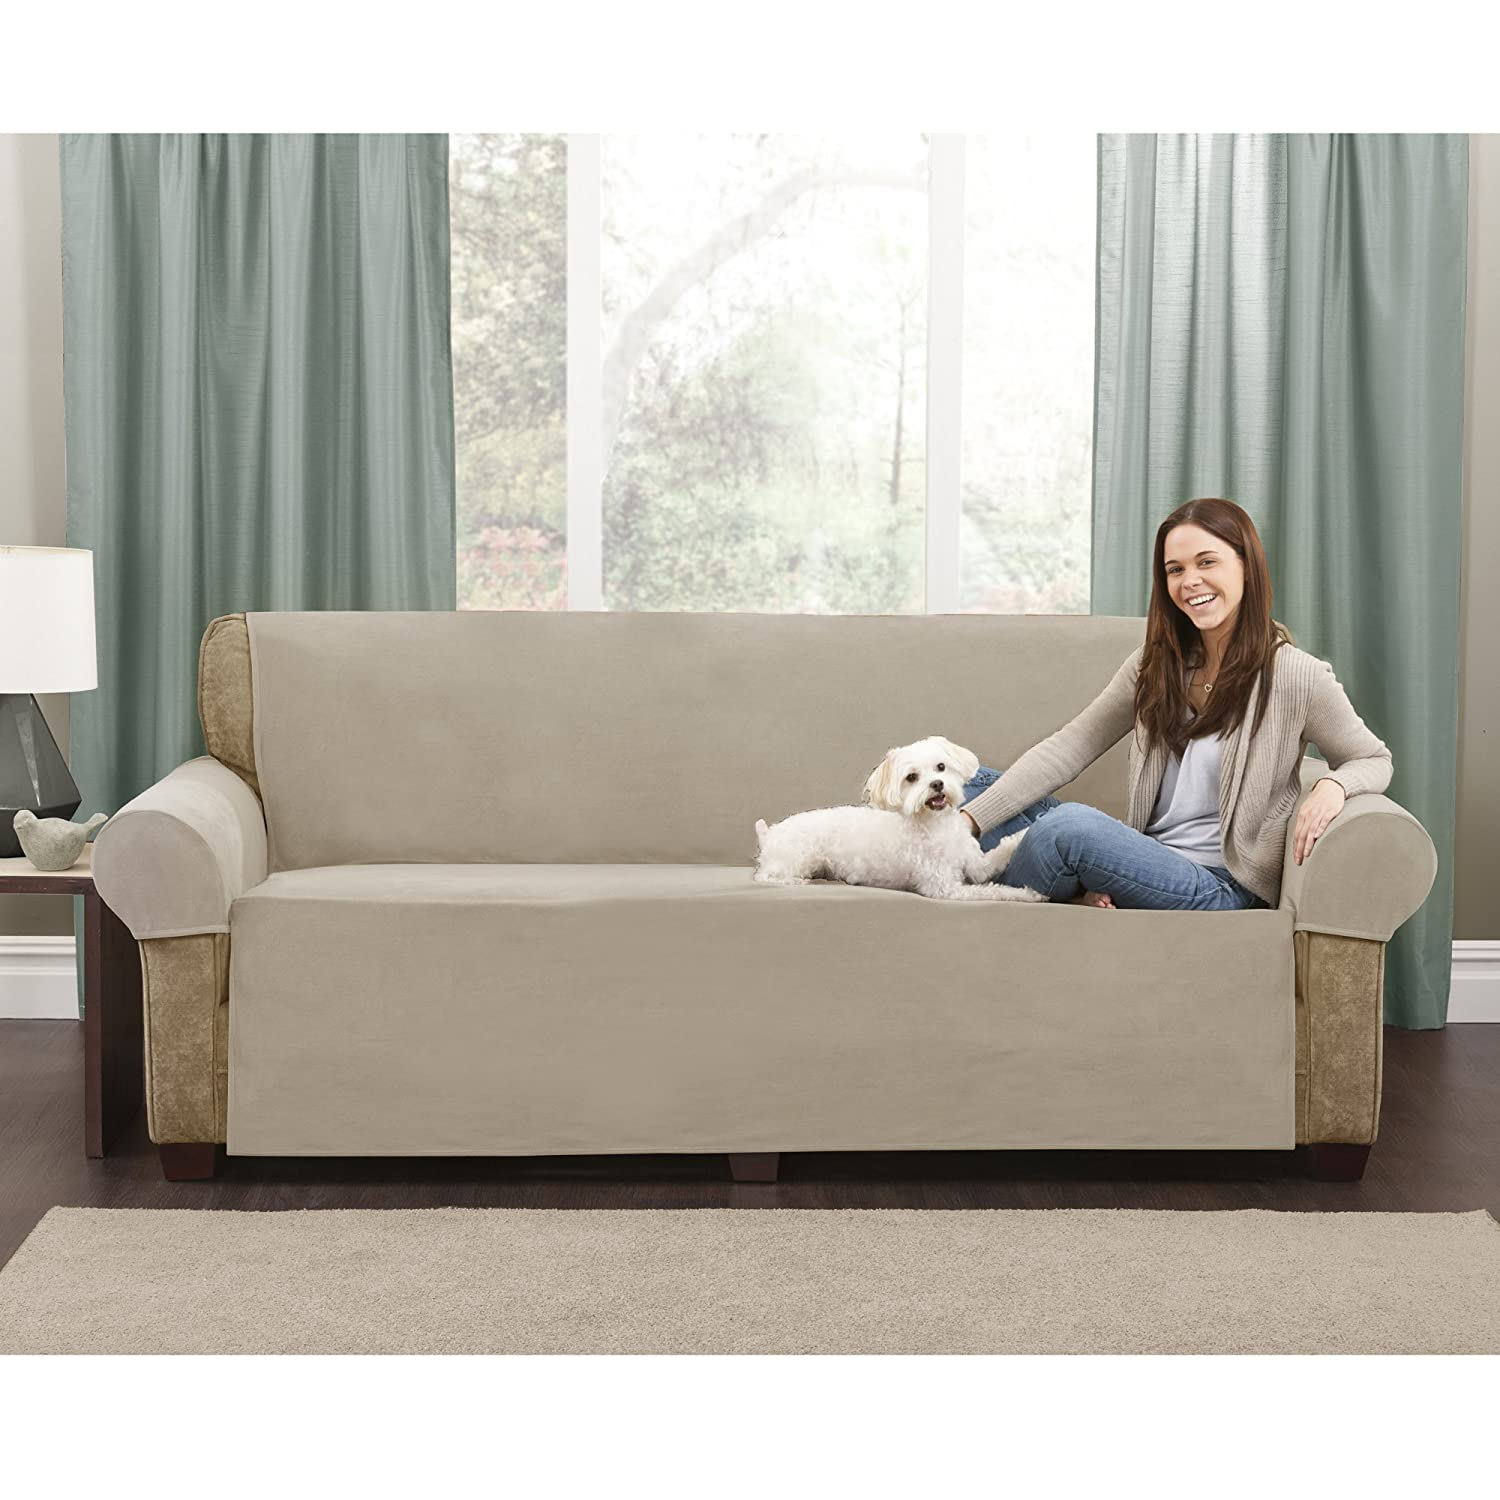 Amazon Maytex Sofa Pet Cover Set Tan Kitchen & Dining